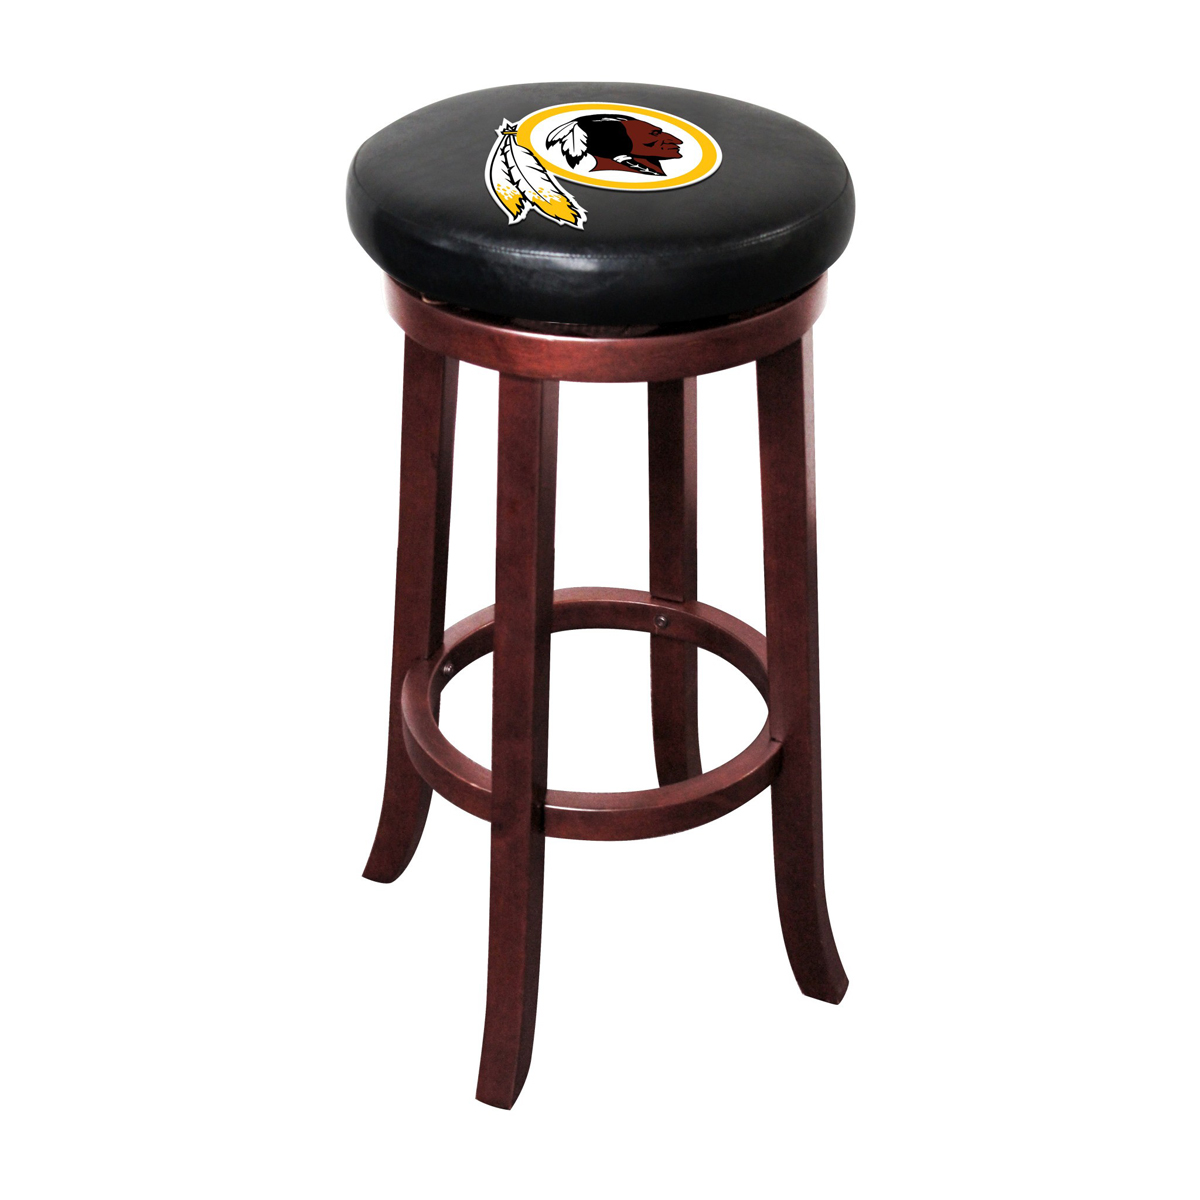 WASHINGTON REDSKINS WOOD BAR STOOL